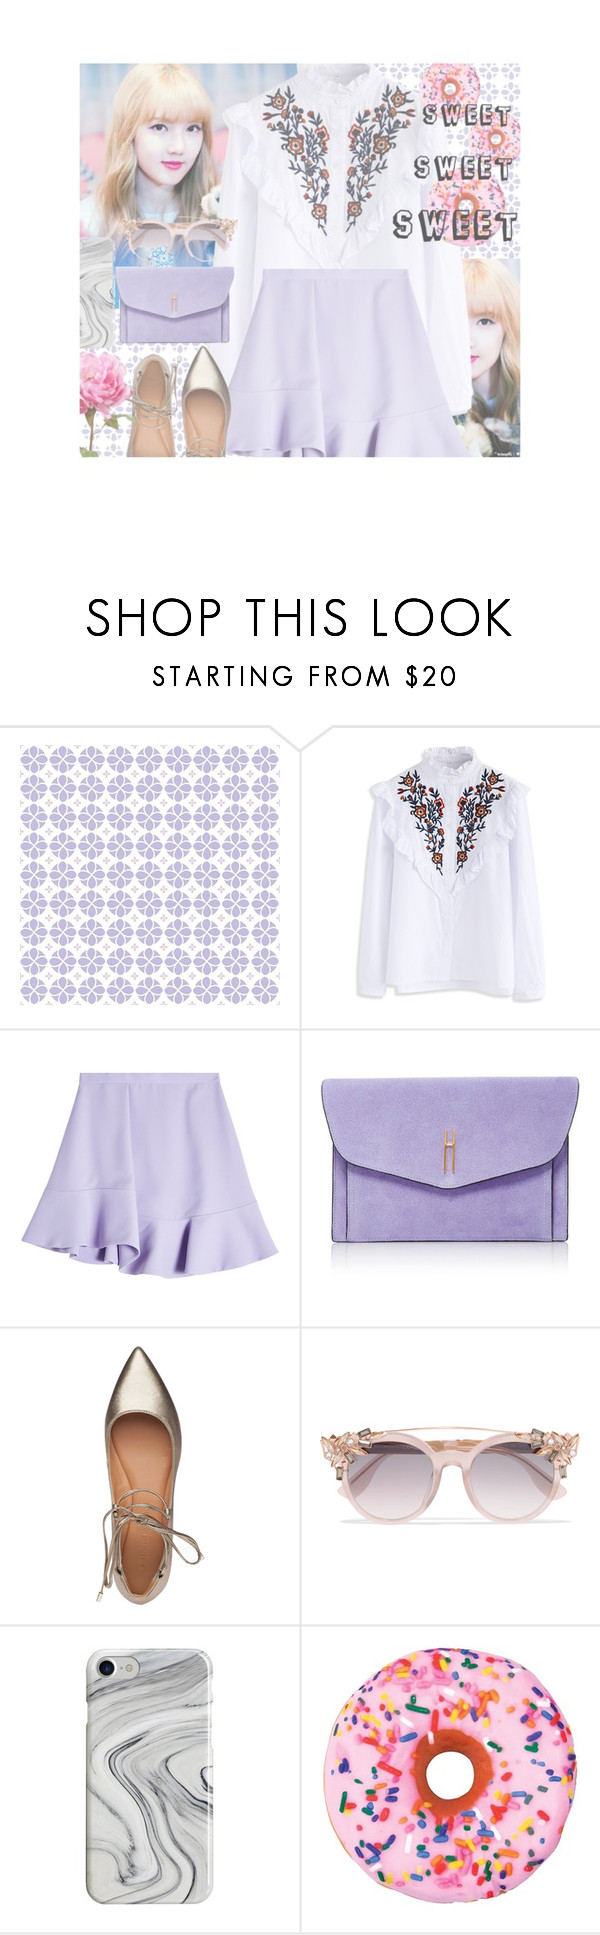 """435"" by niji-niji ❤ liked on Polyvore featuring York Wallcoverings, Chicwish, Carven, Hayward, Sigerson Morrison, Jimmy Choo, Recover and Iscream"